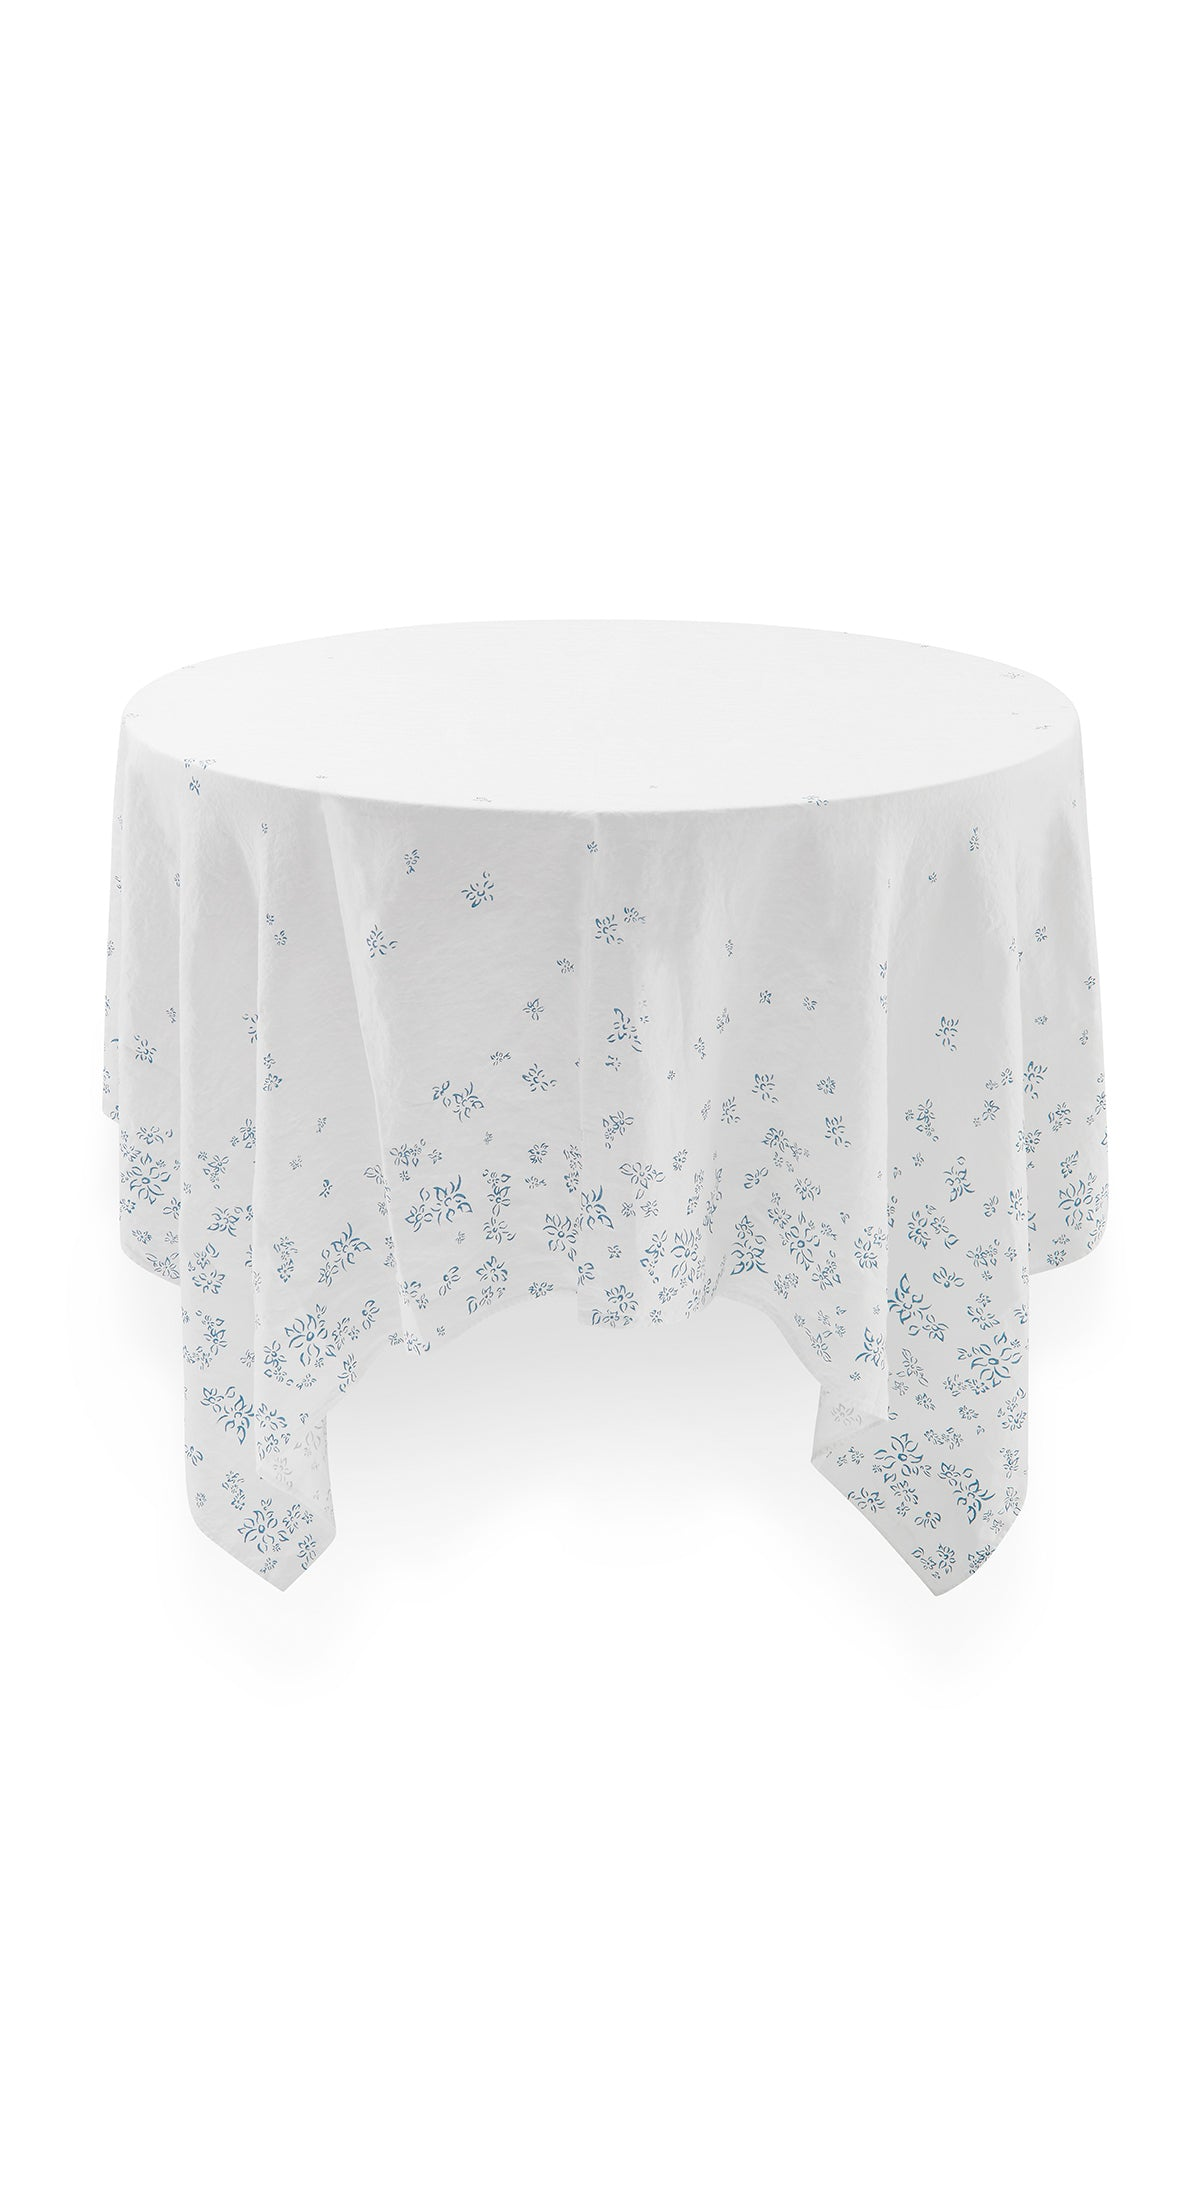 Bernadette's Falling Flower Square Linen Tablecloth in Light Blue, 200cm x 200cm